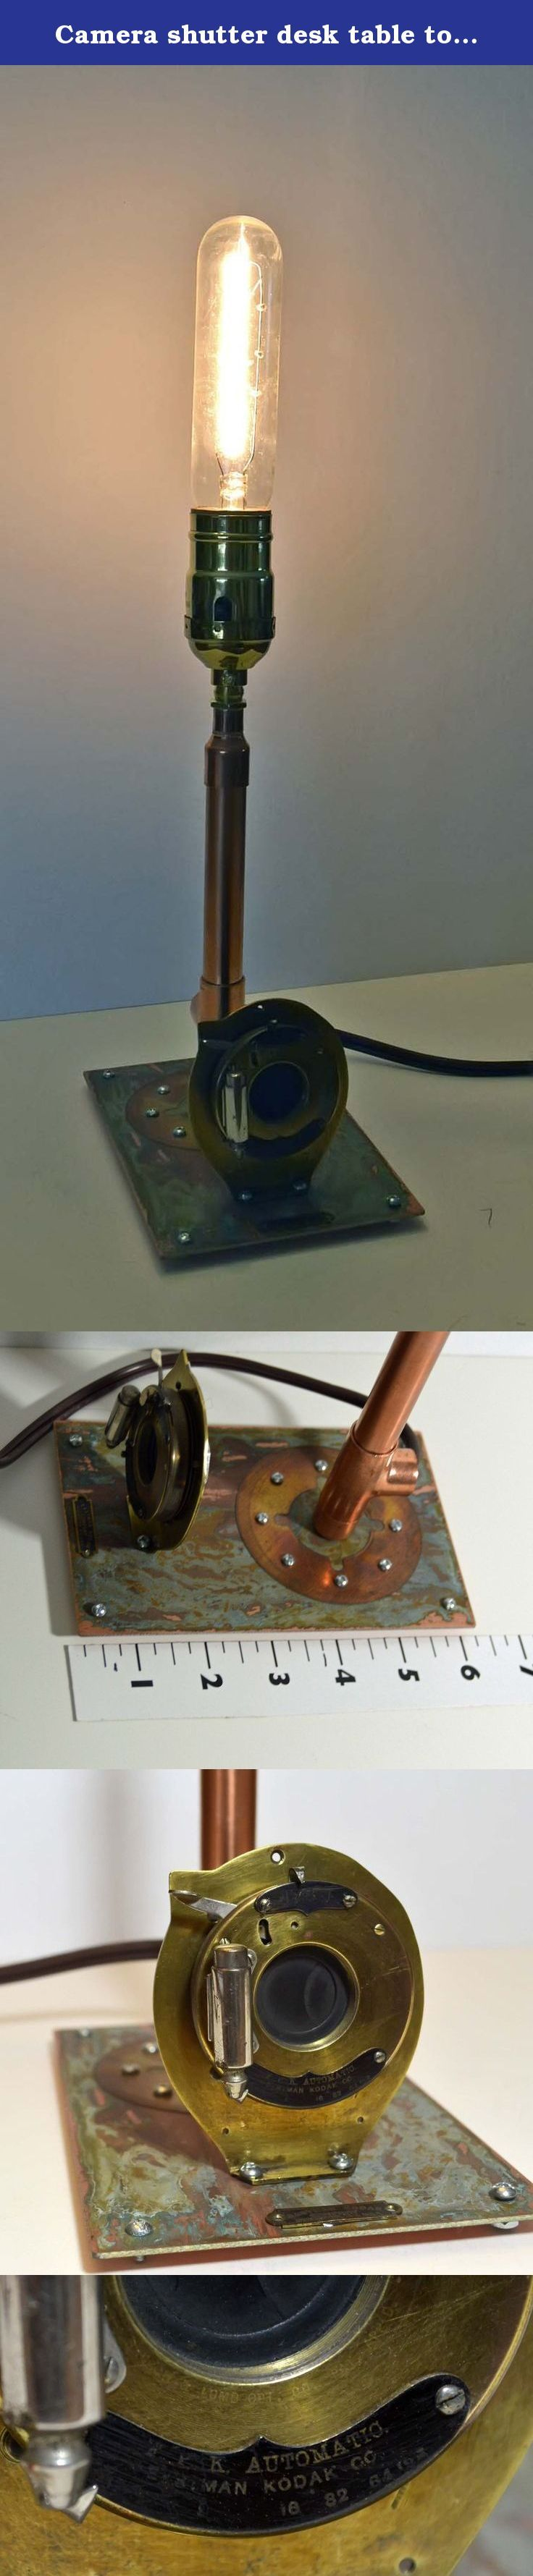 Camera shutter desk table top lamp light recycled PC board handmade OOAK hand signed sculpture for desk shelf or table working shutter mechanism Stands 14 tall with bulb. This a a great gift, a table top lamp created with a antique brass camera shutter mechanism that still works! includes pictured light bulb, fits standard size bulbs. also copper pipe and scrap PC board 14 x 6 x 4.